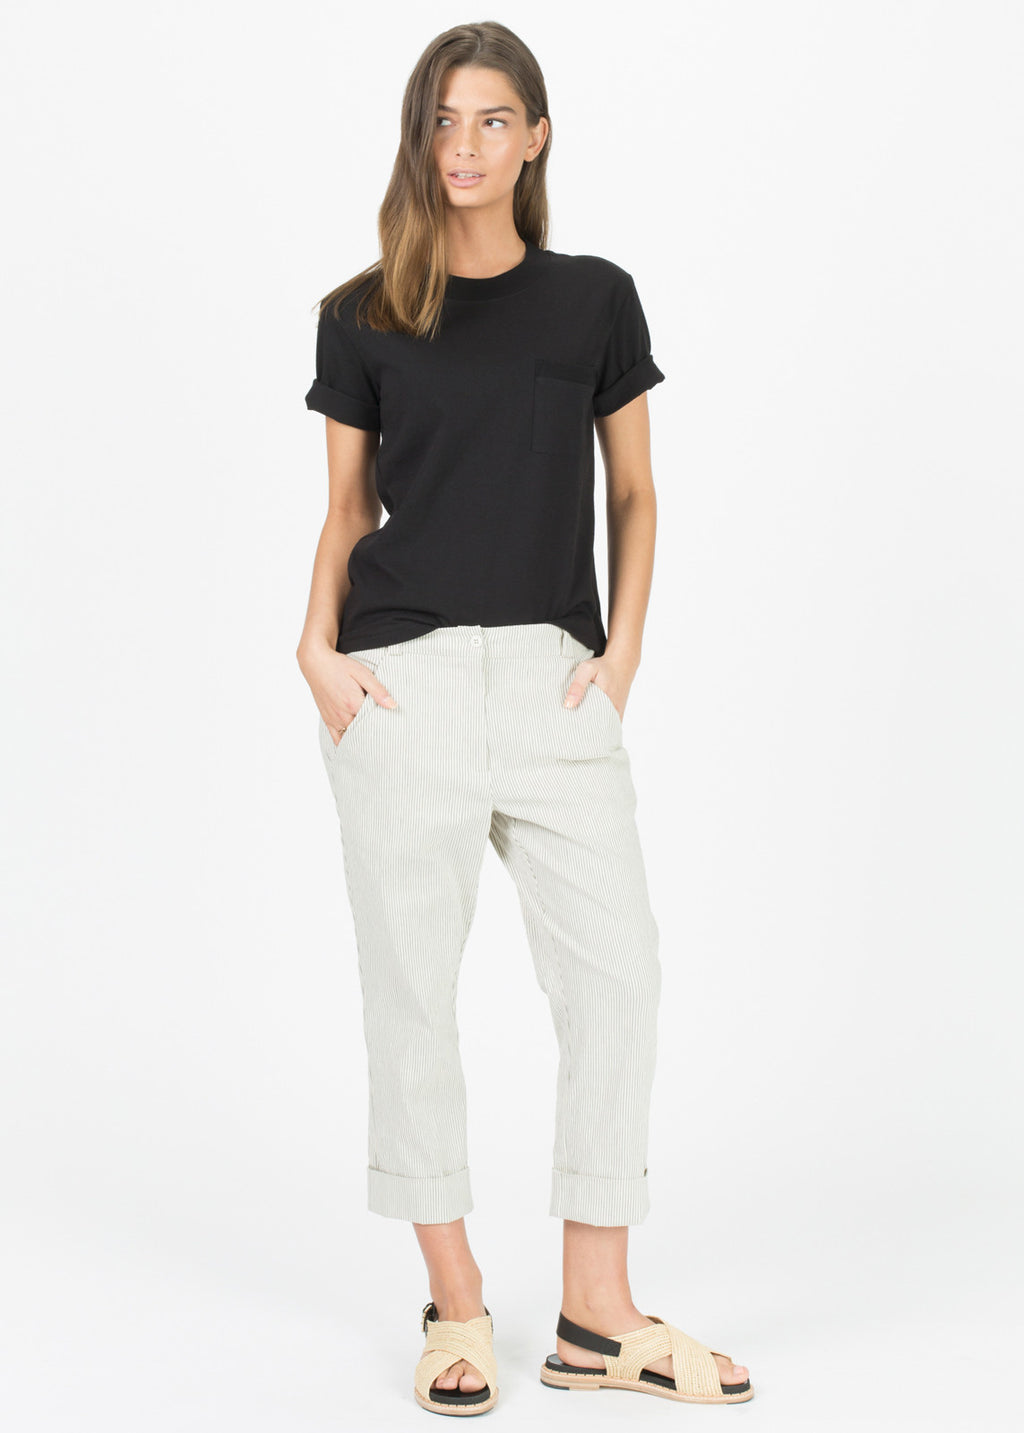 One Pocket Mock-Neck Tee